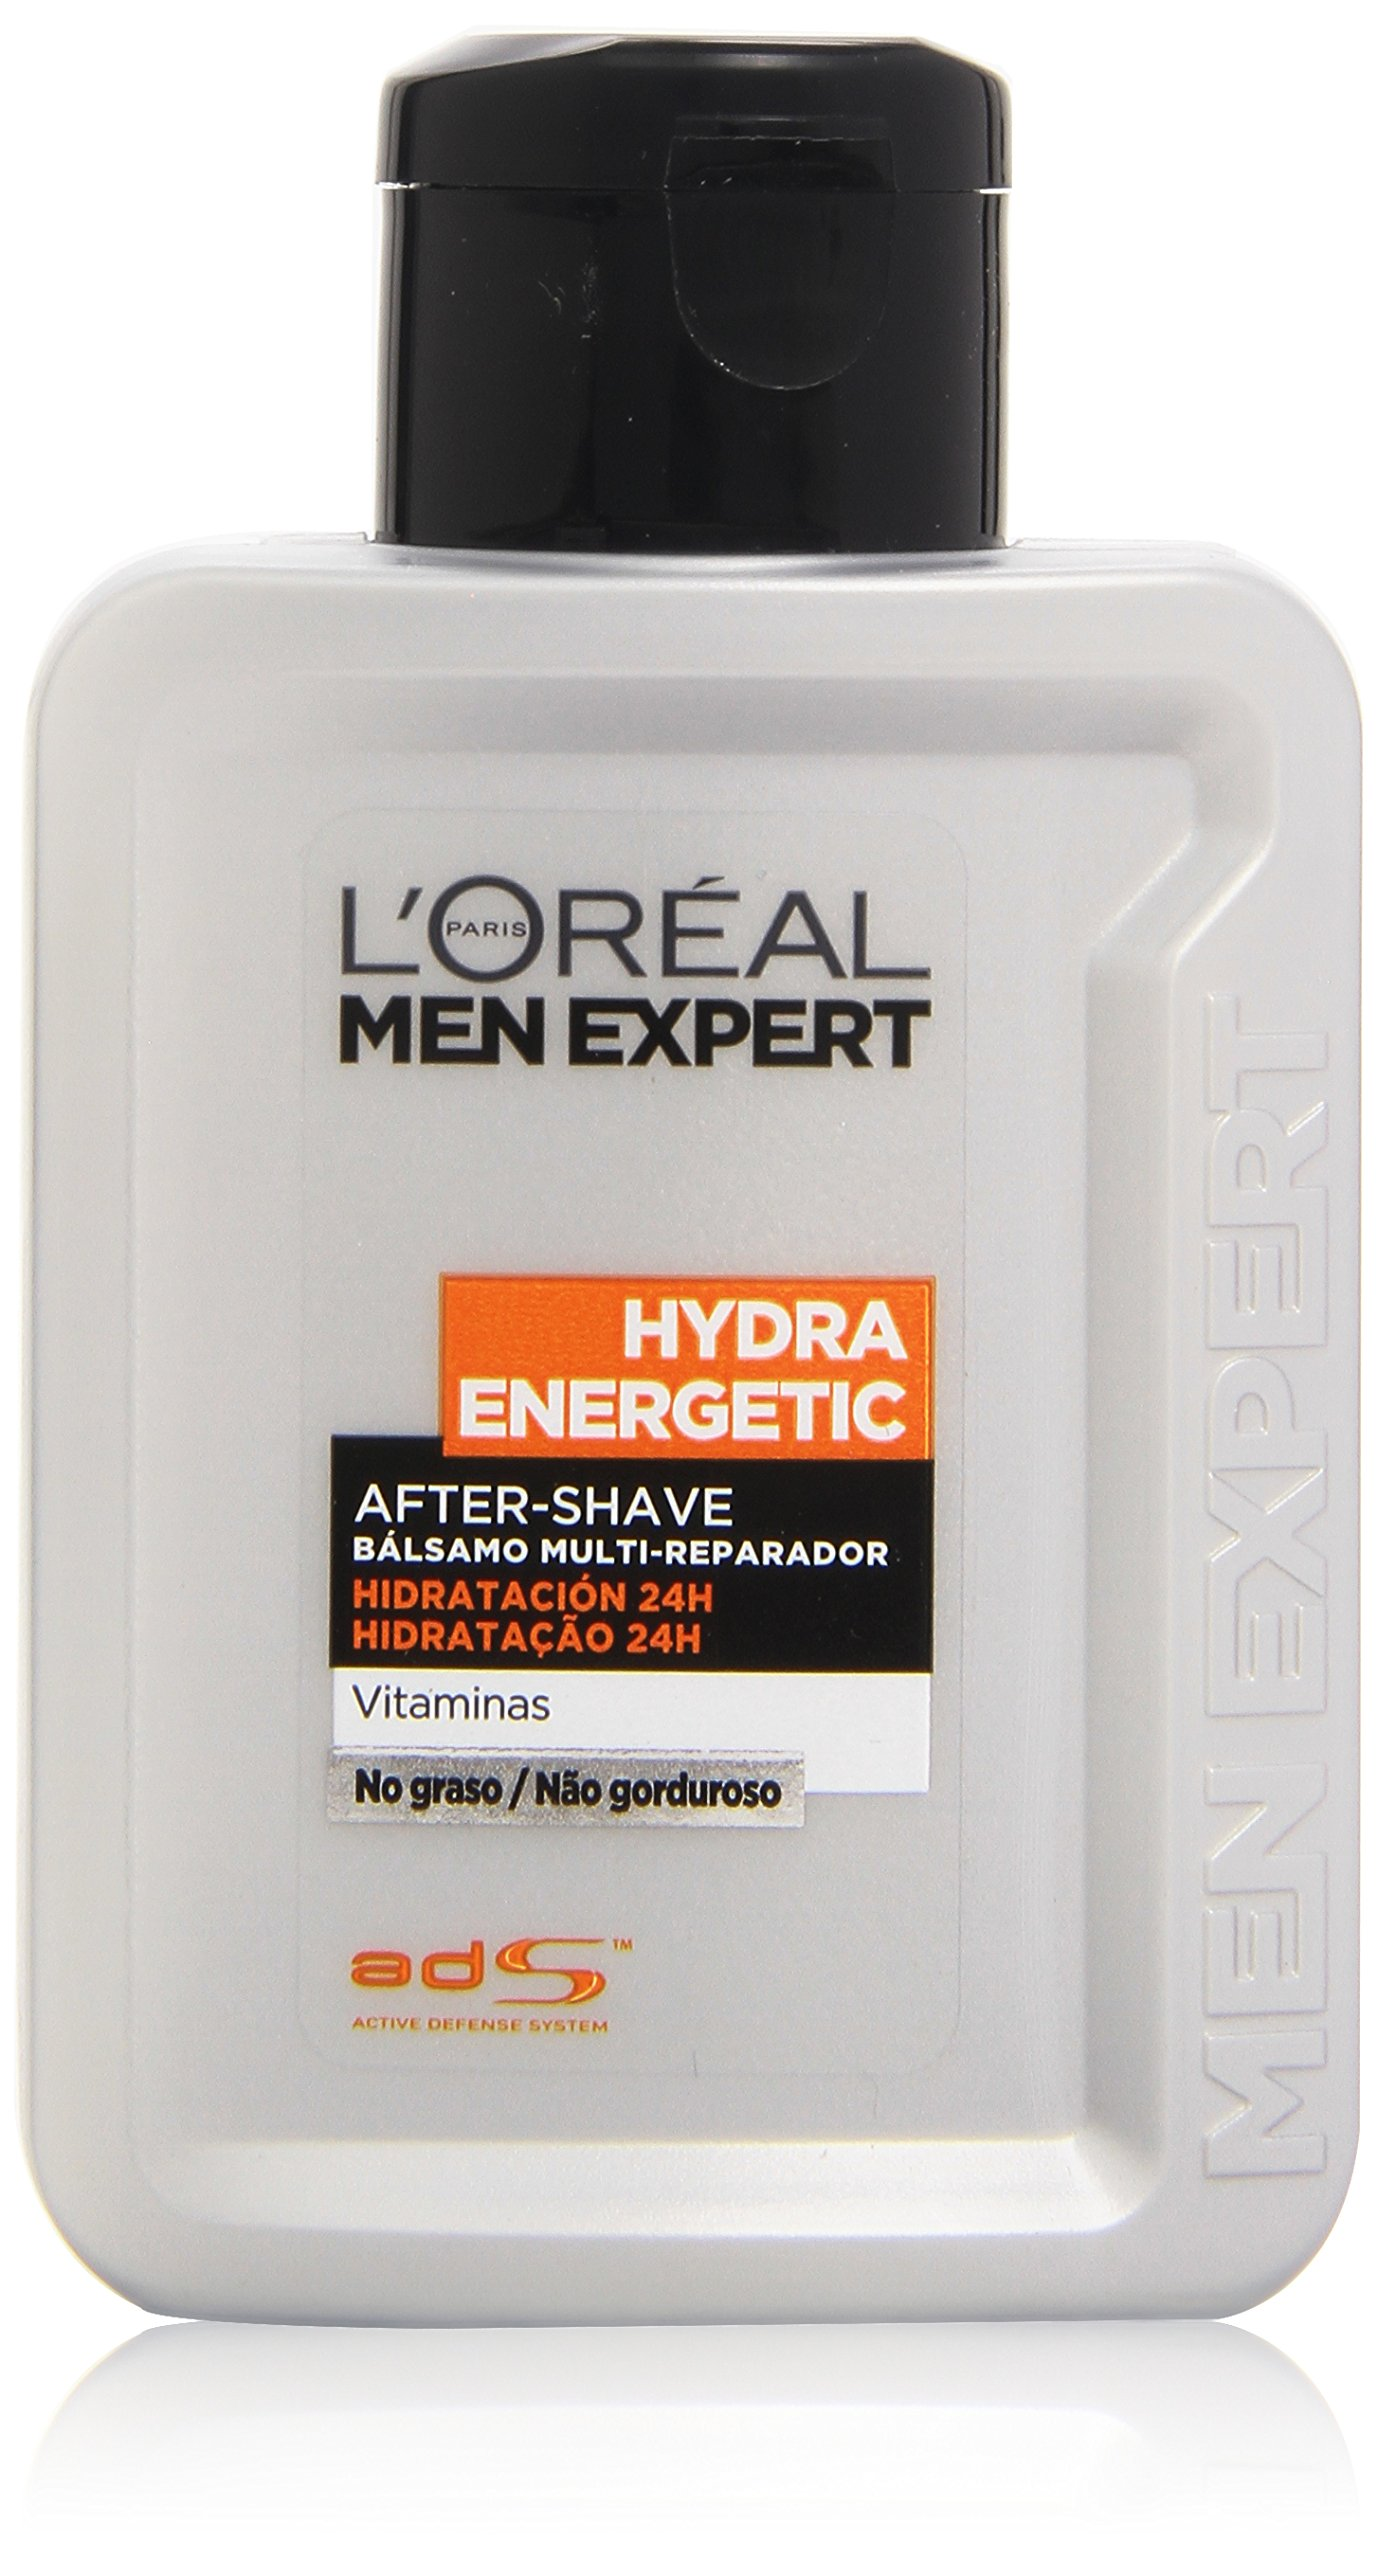 L'Oréal Paris Men Expert After Shave Reparador Hydraenergetic, 100 ml